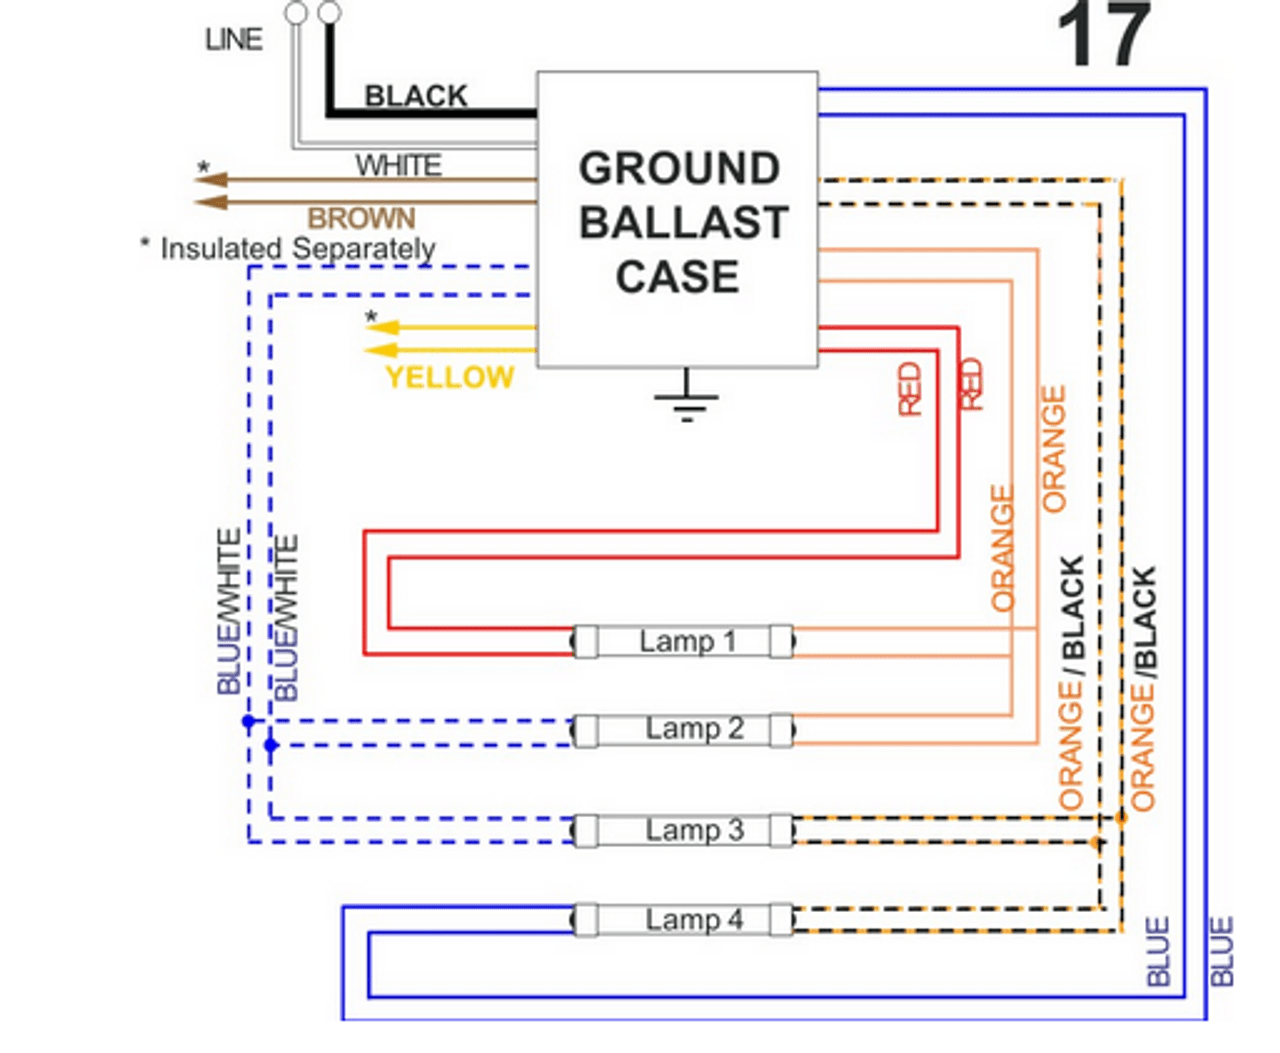 hight resolution of allanson 648 at magnetic sign ballast 8 to 24 feet total length allanson ballast wiring diagram allanson ballast wiring diagram